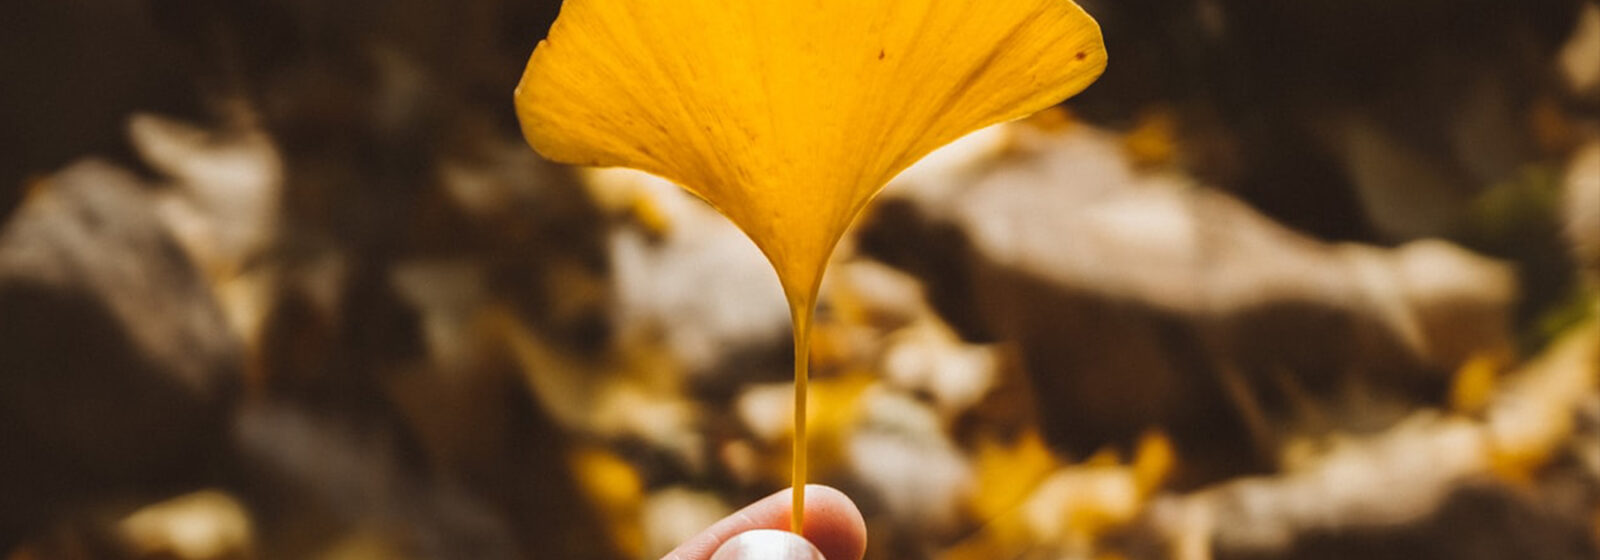 Hand holding a yellow leaf